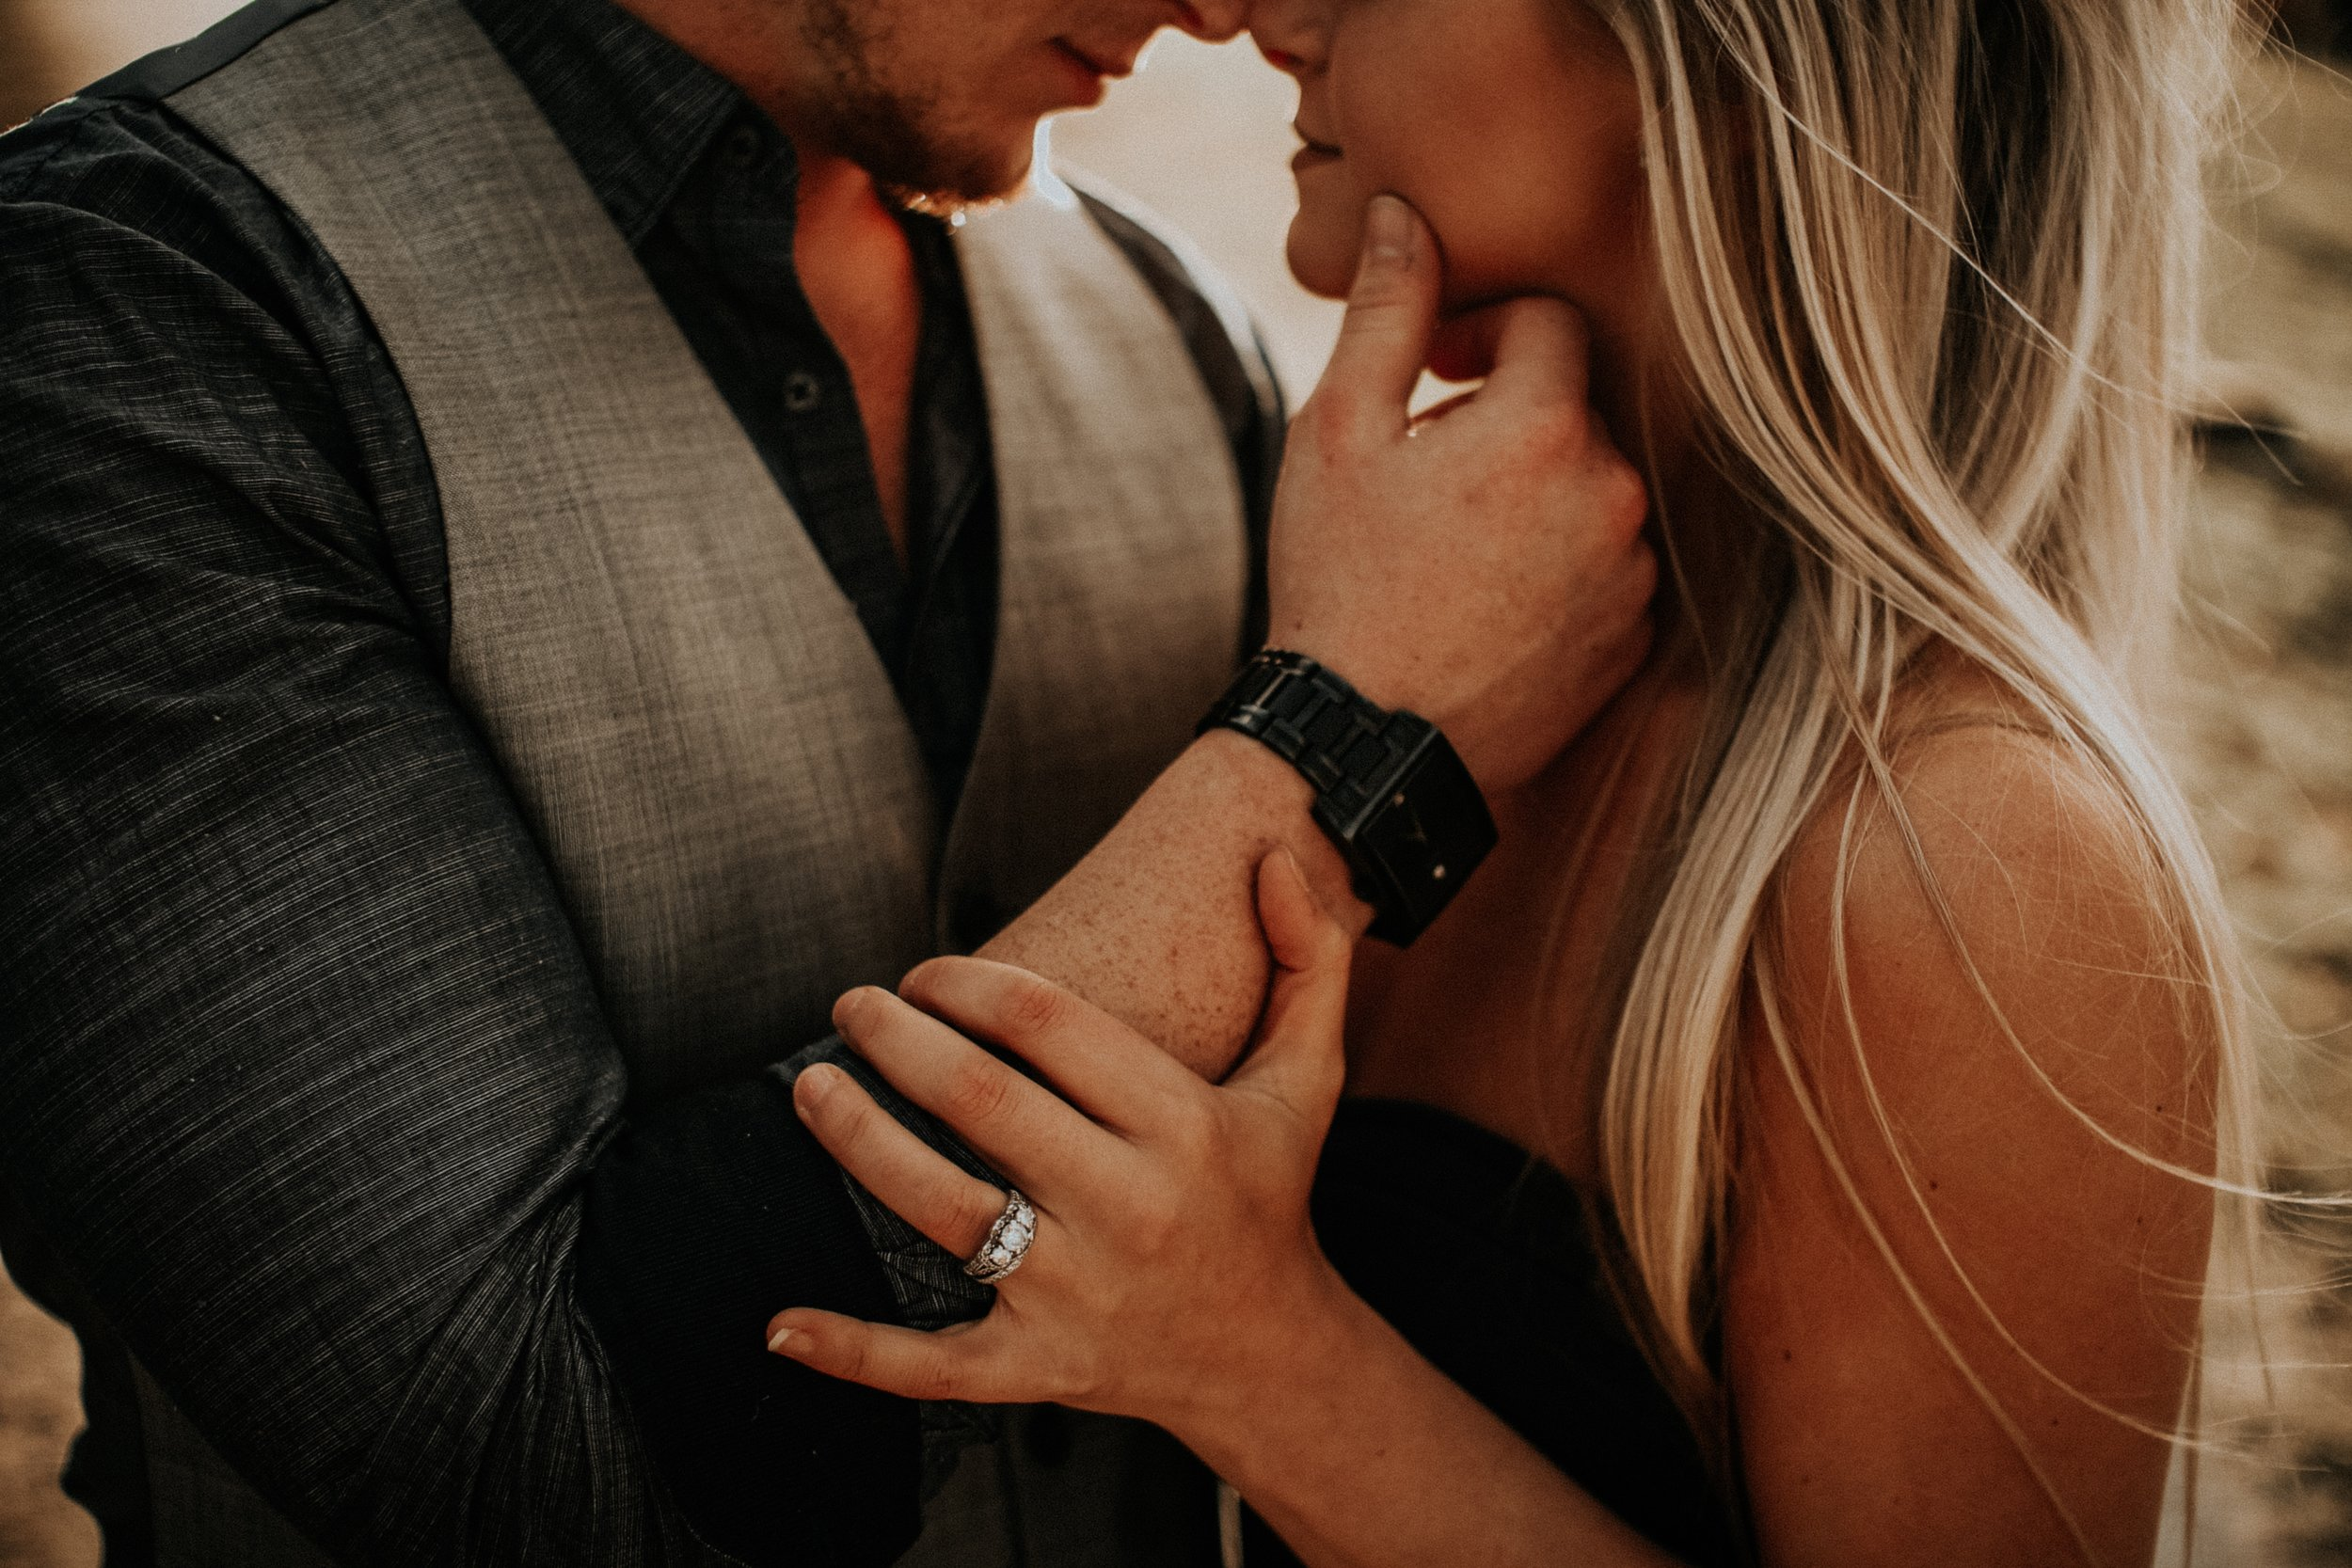 Anxiety can interfere with optimal sexual functioning. Sex therapy at Tri Valley Relationship Therapy in the East Bay can help you learn how to manage your anxiety better and improve your sexual connection.